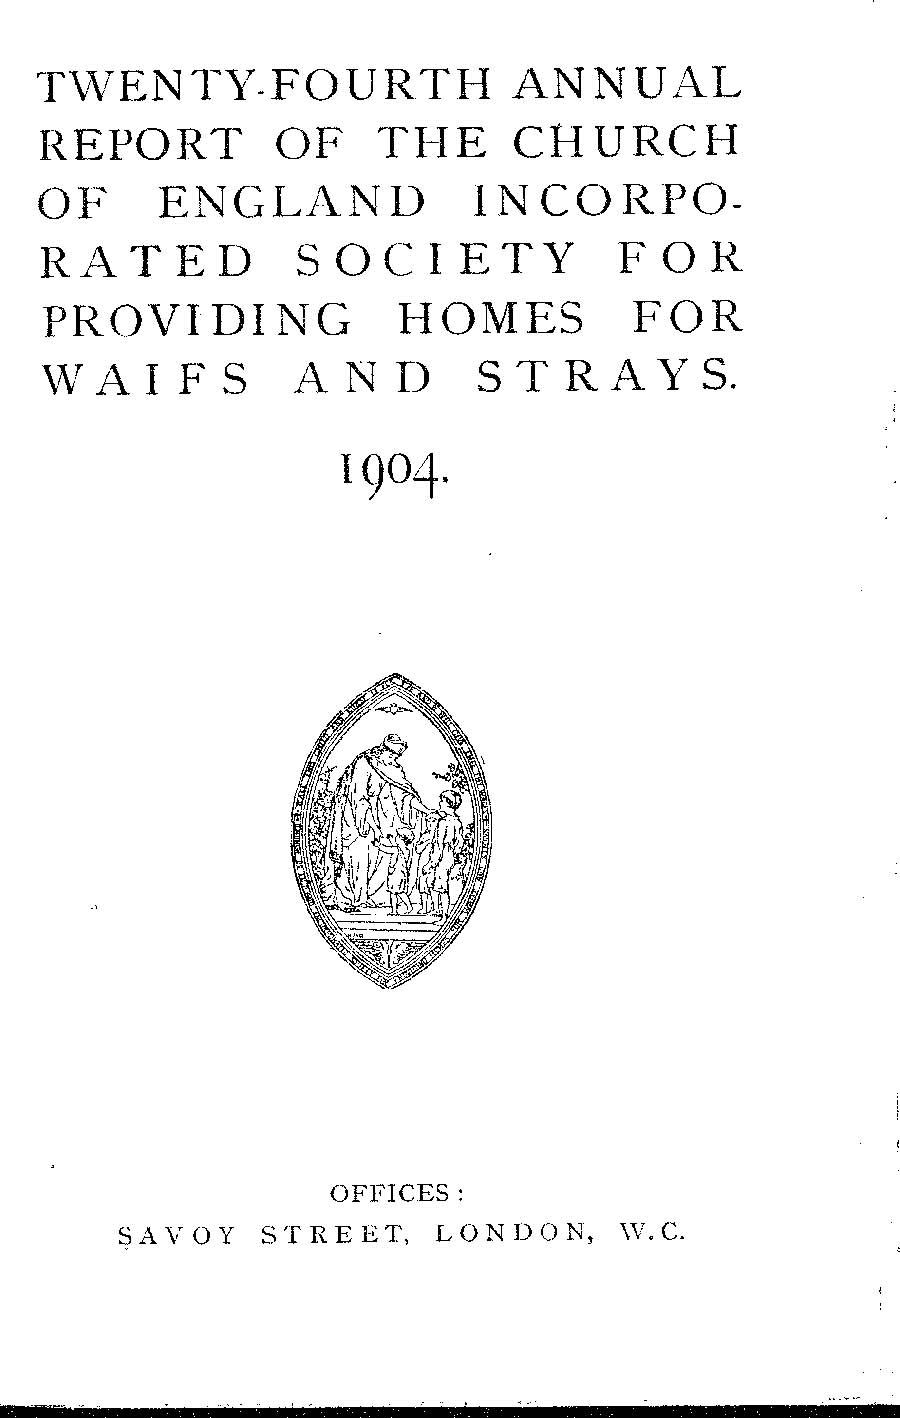 Annual Report 1904 - page 1